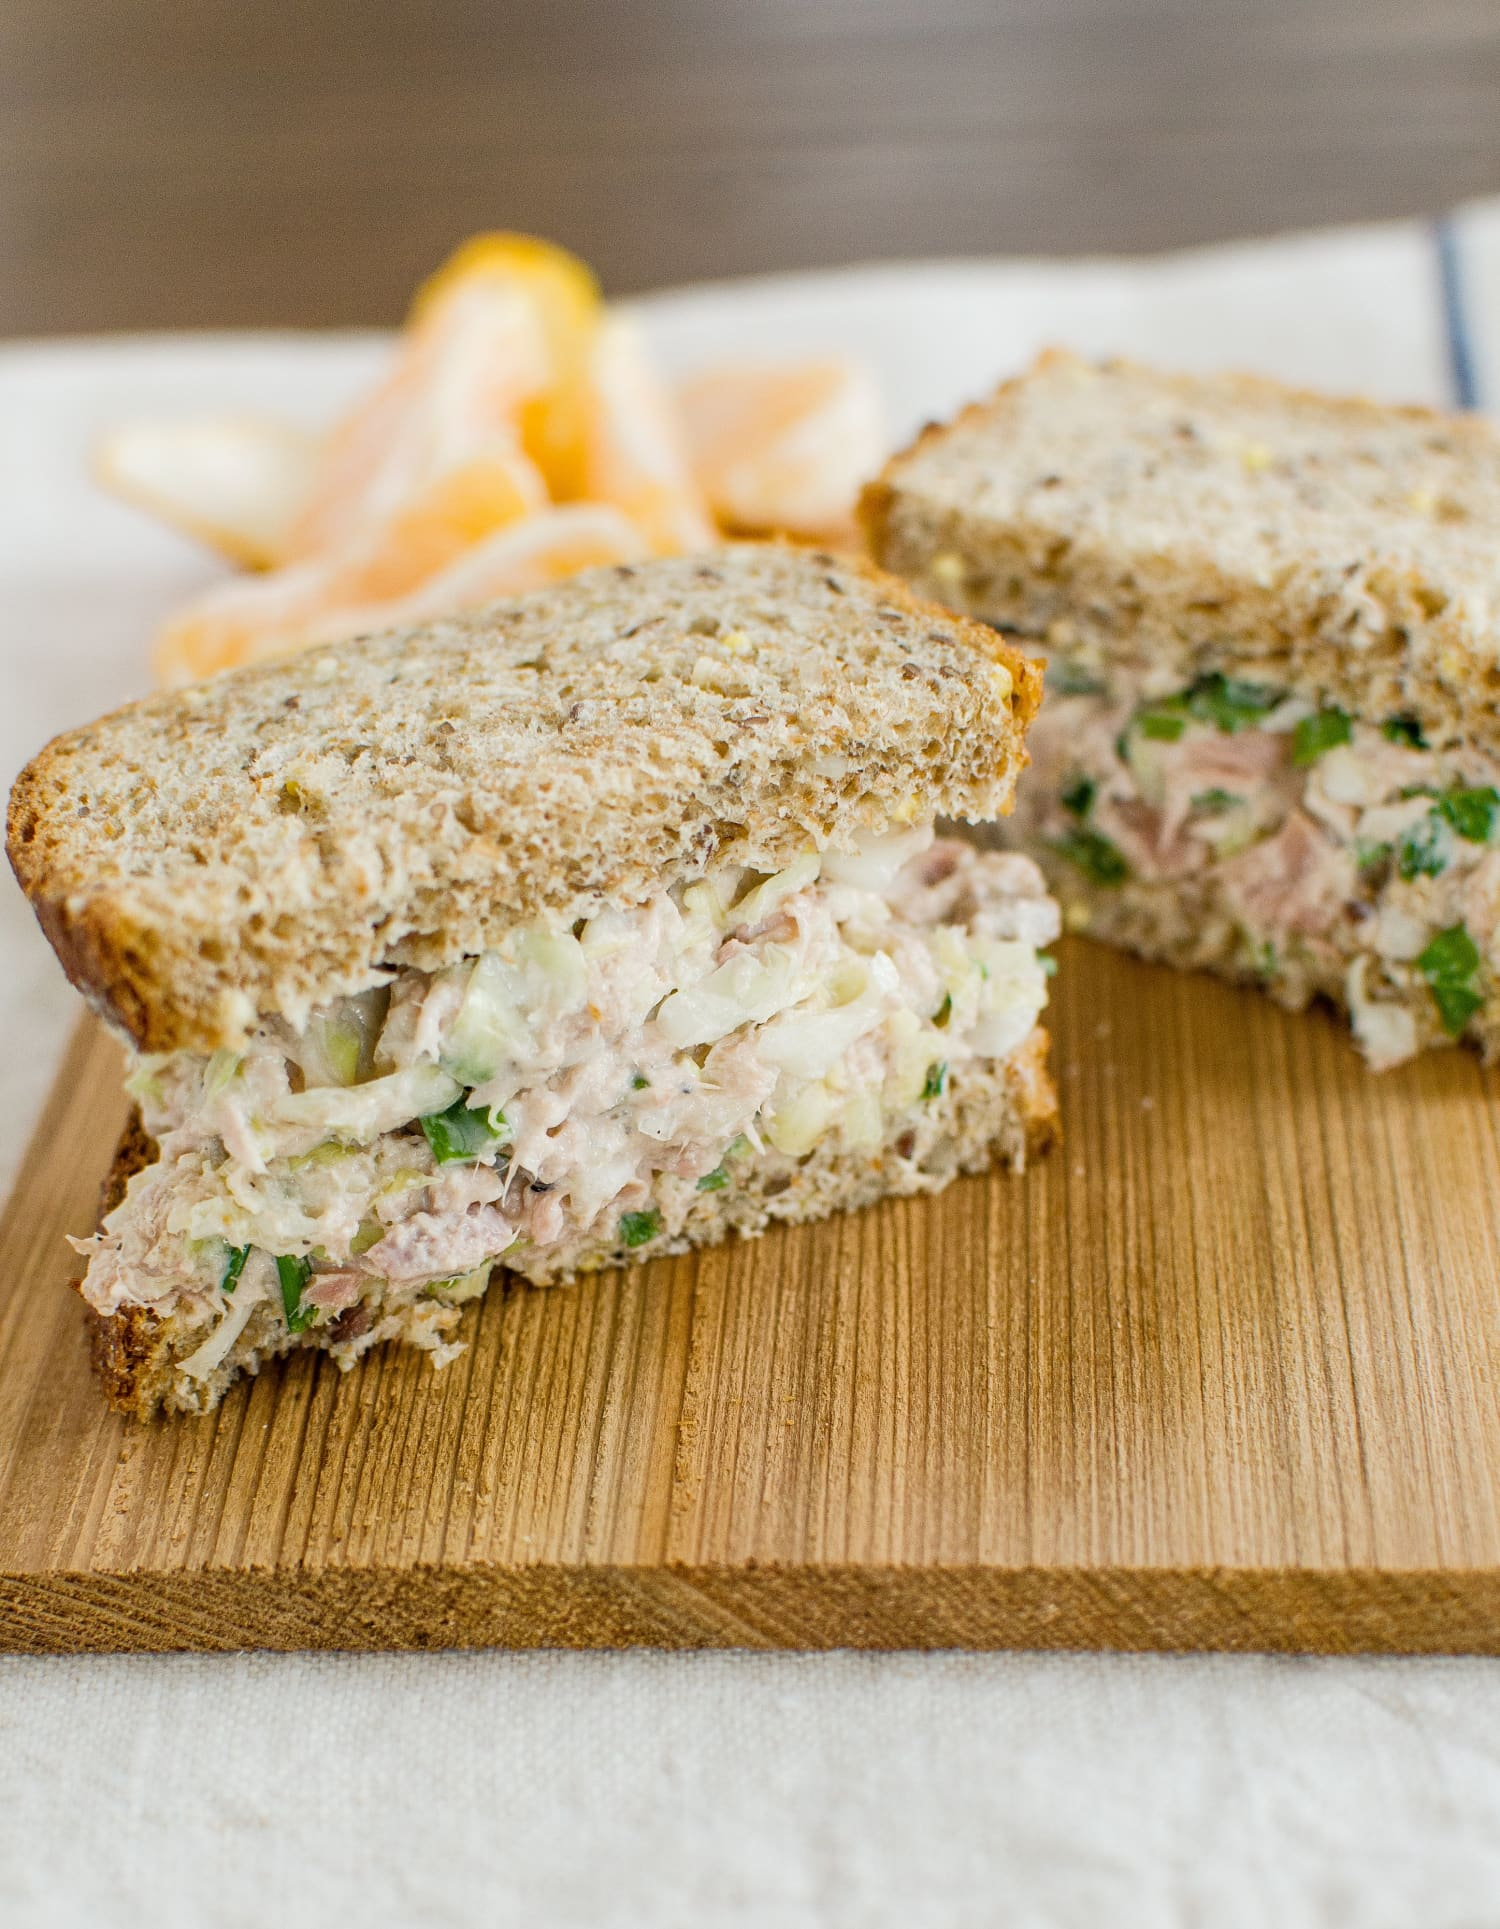 Crisp Tuna-Cabbage Salad